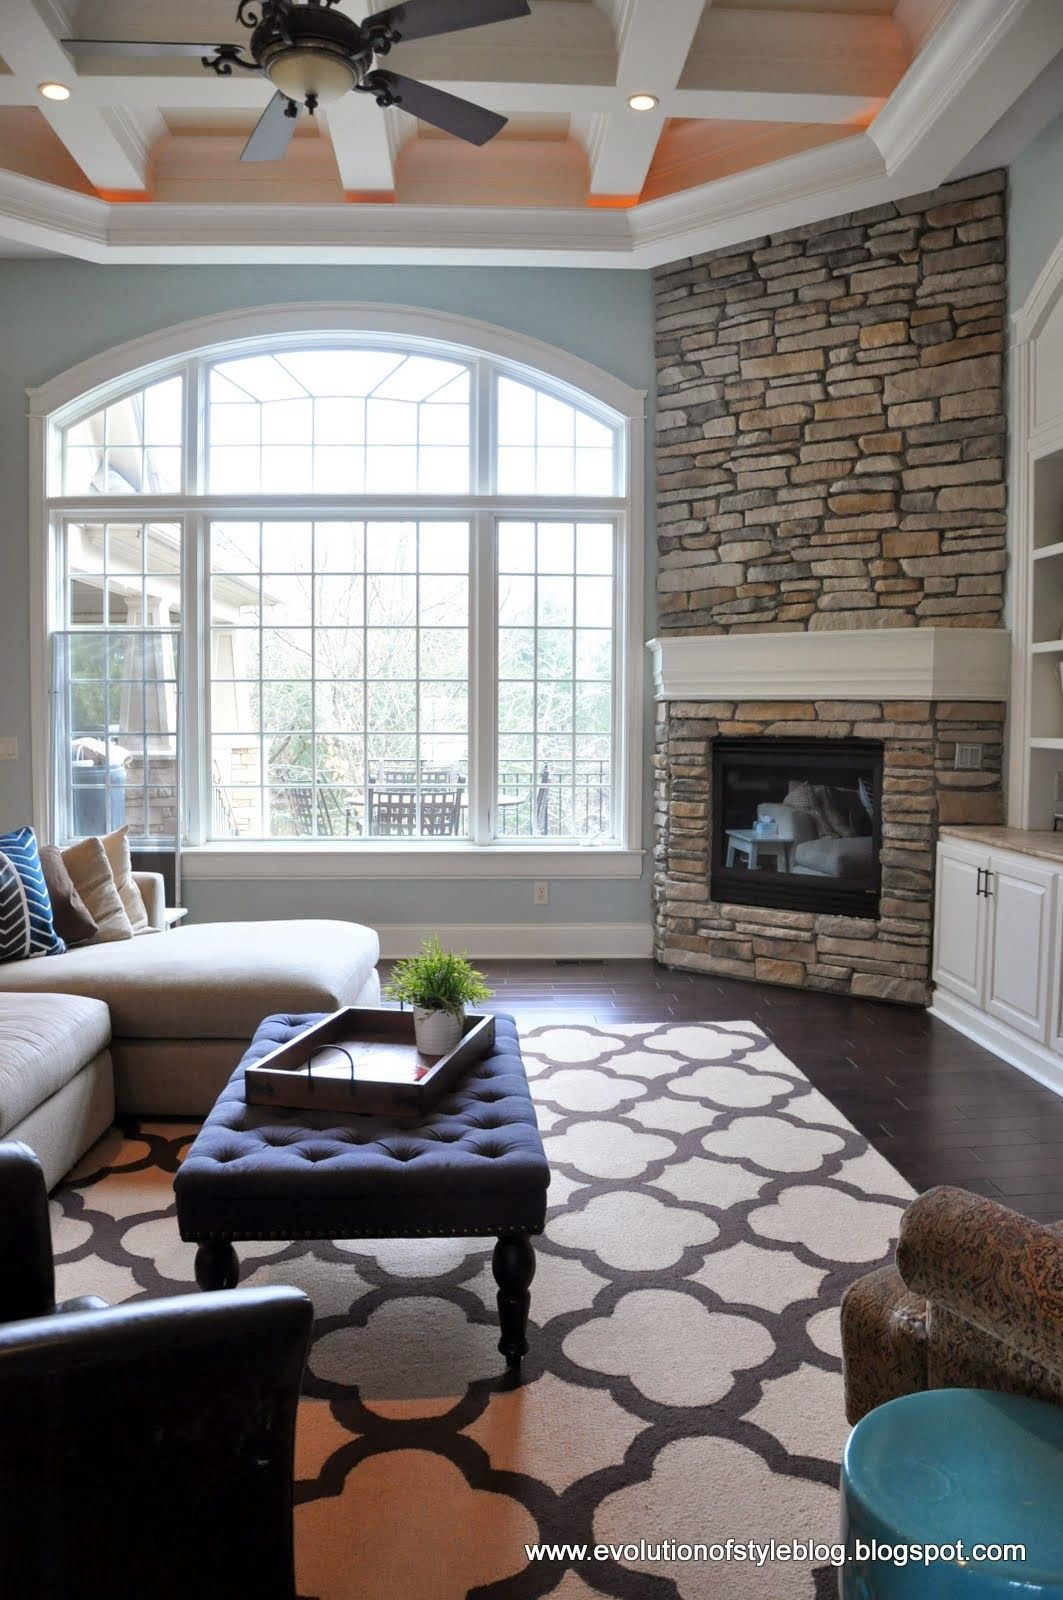 Living Room With Fireplace Design Ideas: Evolution Of Style: DIY Stone Fireplace Reveal (for Real